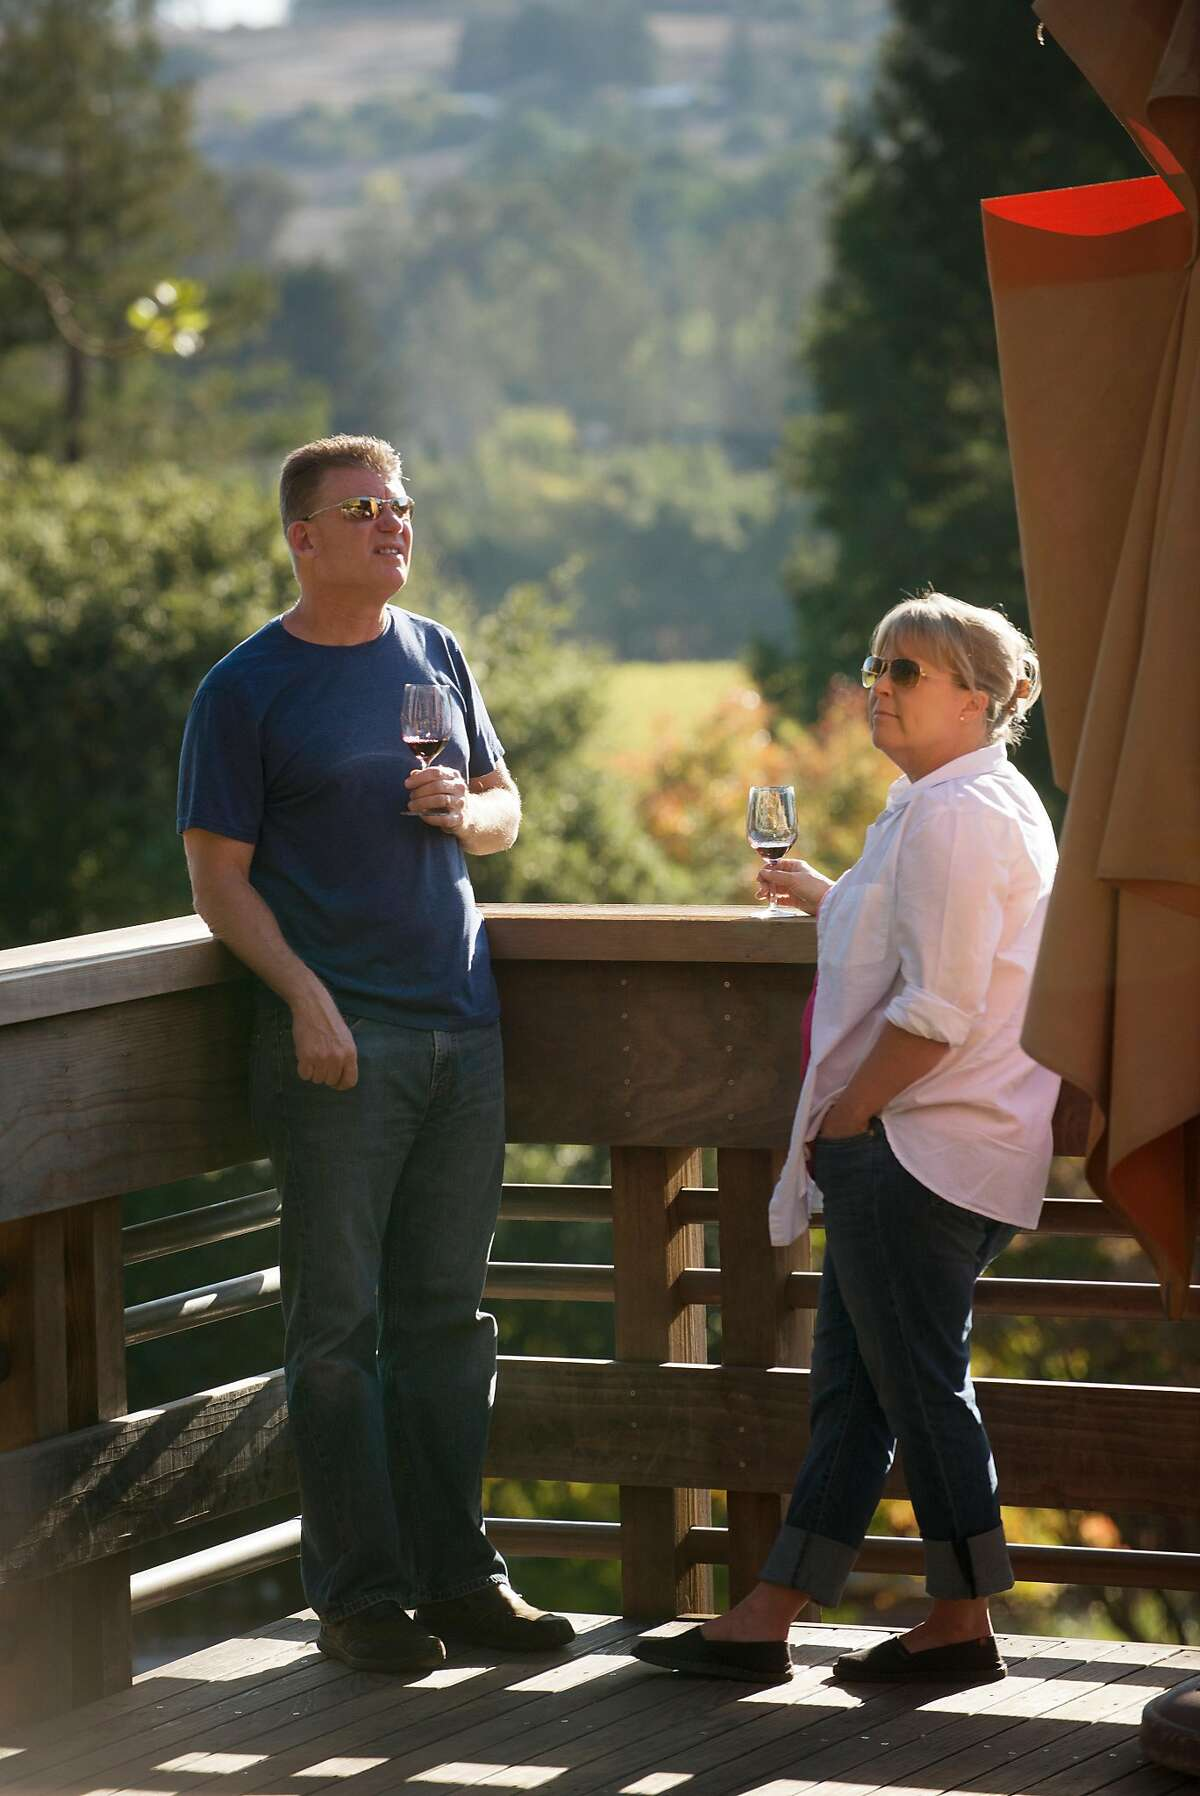 Tom Young, left, and Joanna Young of Penngrove, California out on the deck near the tasting room at Matanzas Creek Winery in Santa Rosa on November 5, 2017.